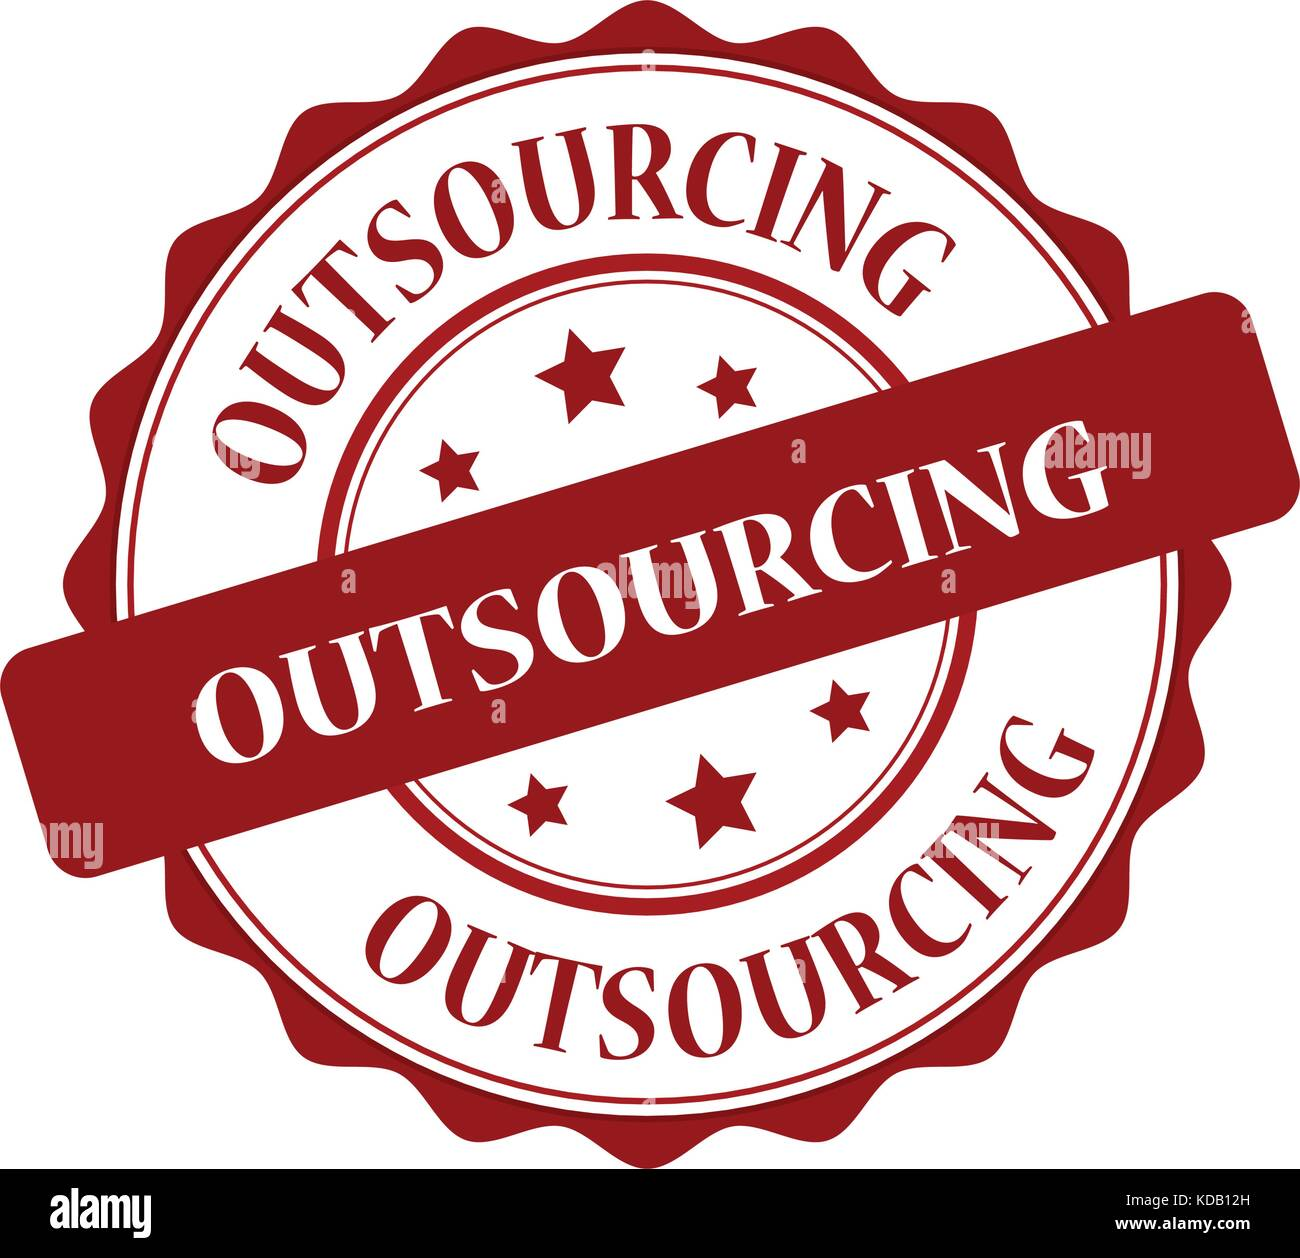 Outsourcing red stamp illustration - Stock Image